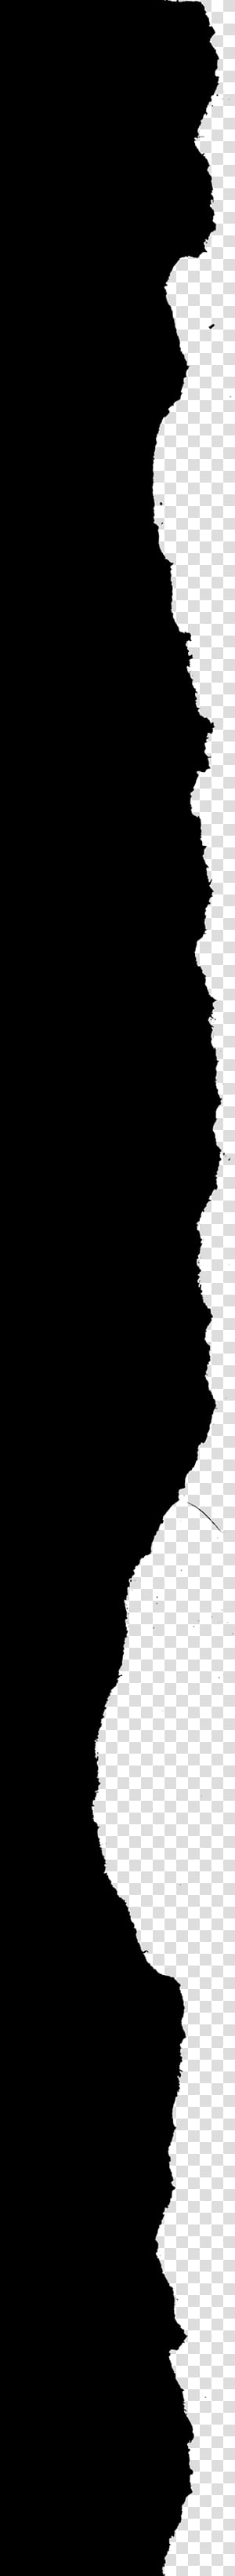 Photoshop Mask transparent background PNG cliparts free.